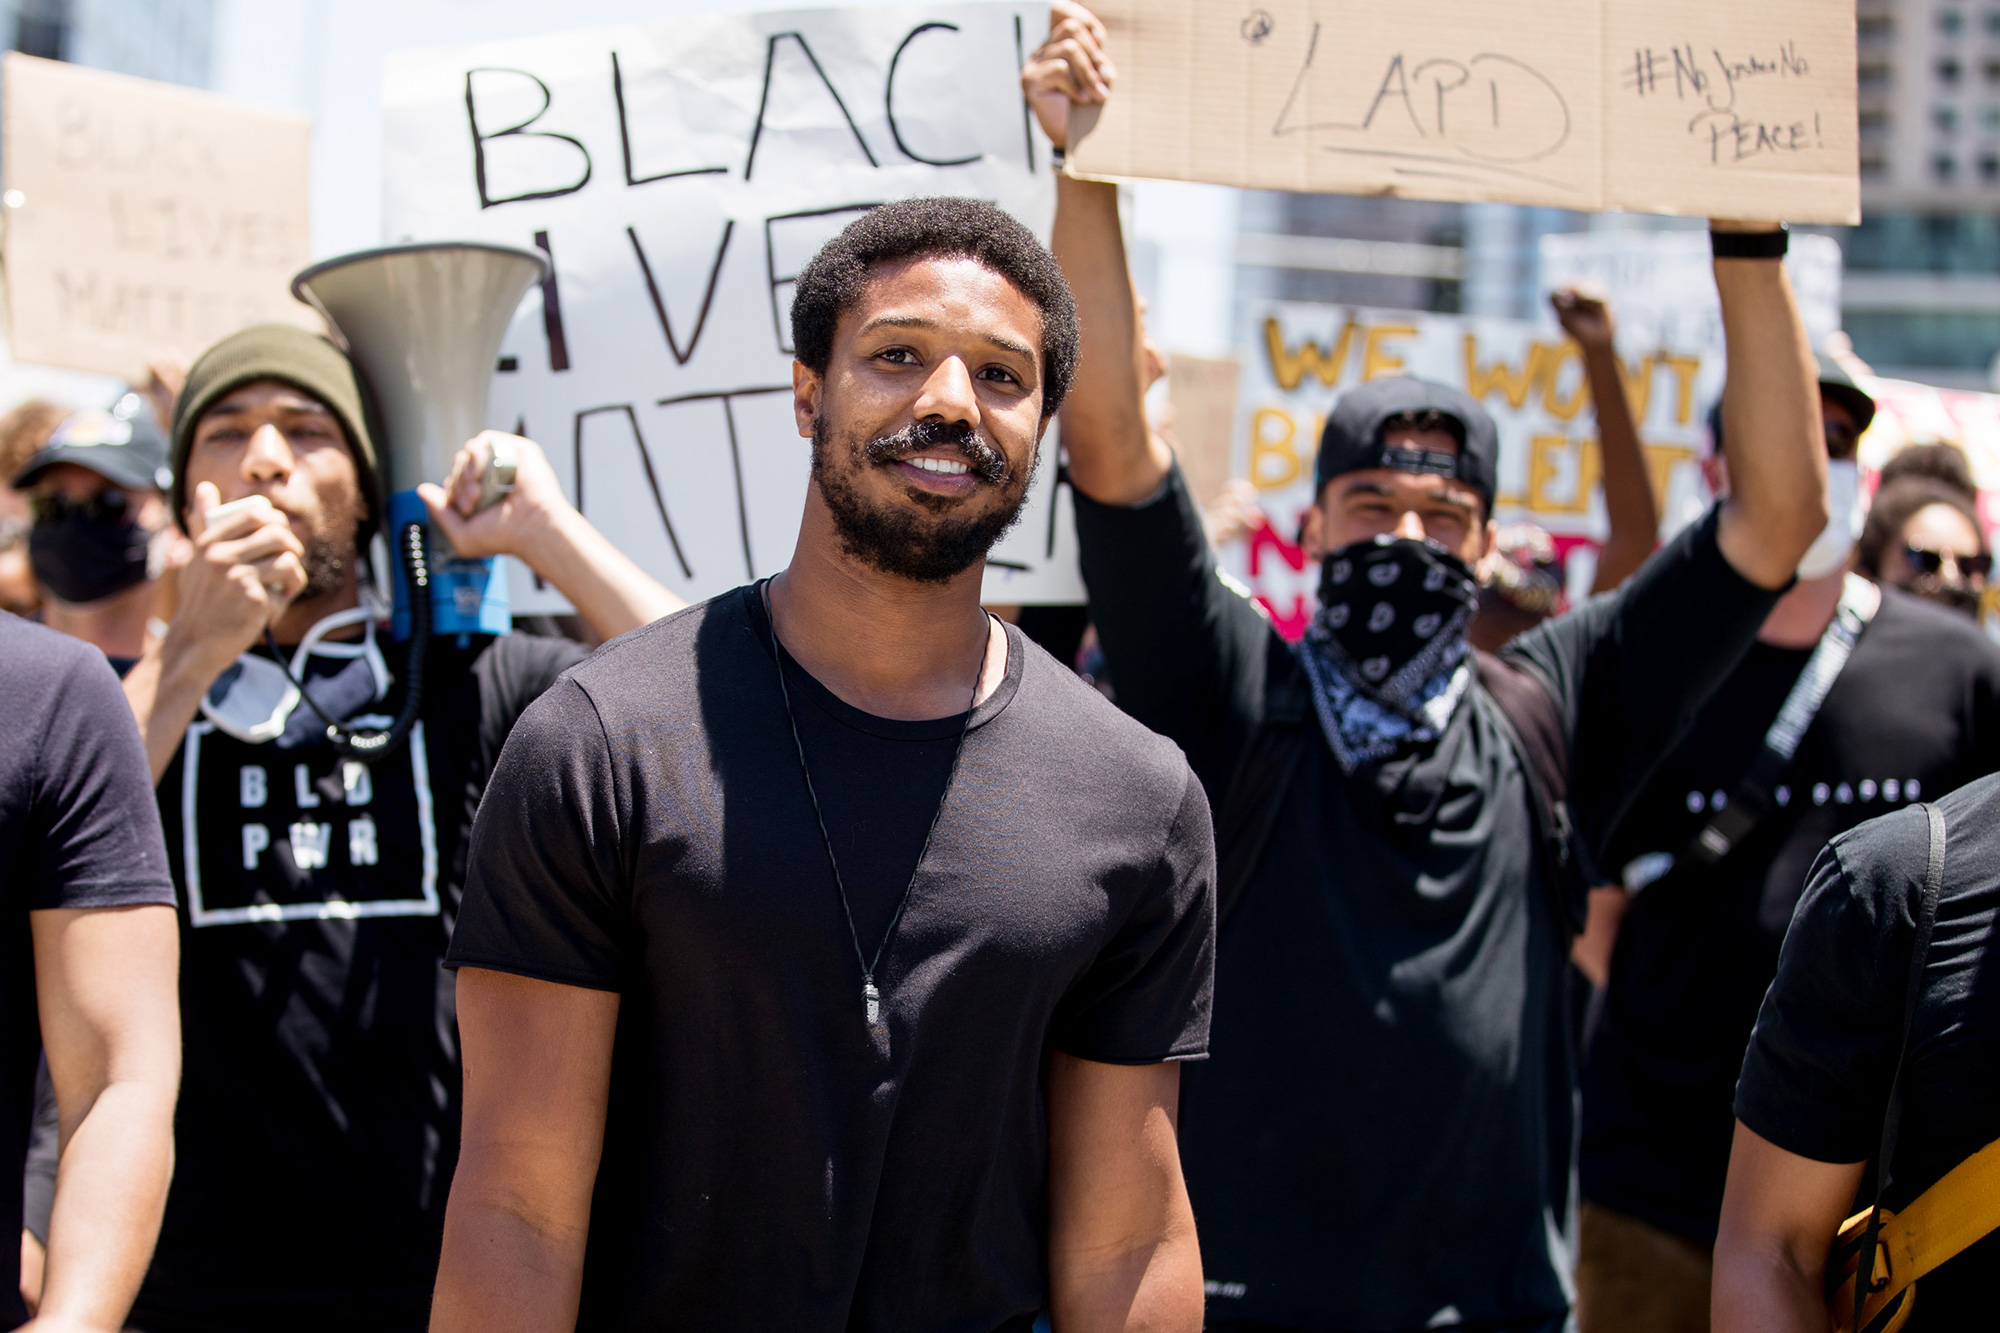 Michael B. Jordan participates in the Hollywood talent agencies march to support Black Lives Matter protests on June 06, 2020 in Beverly Hills